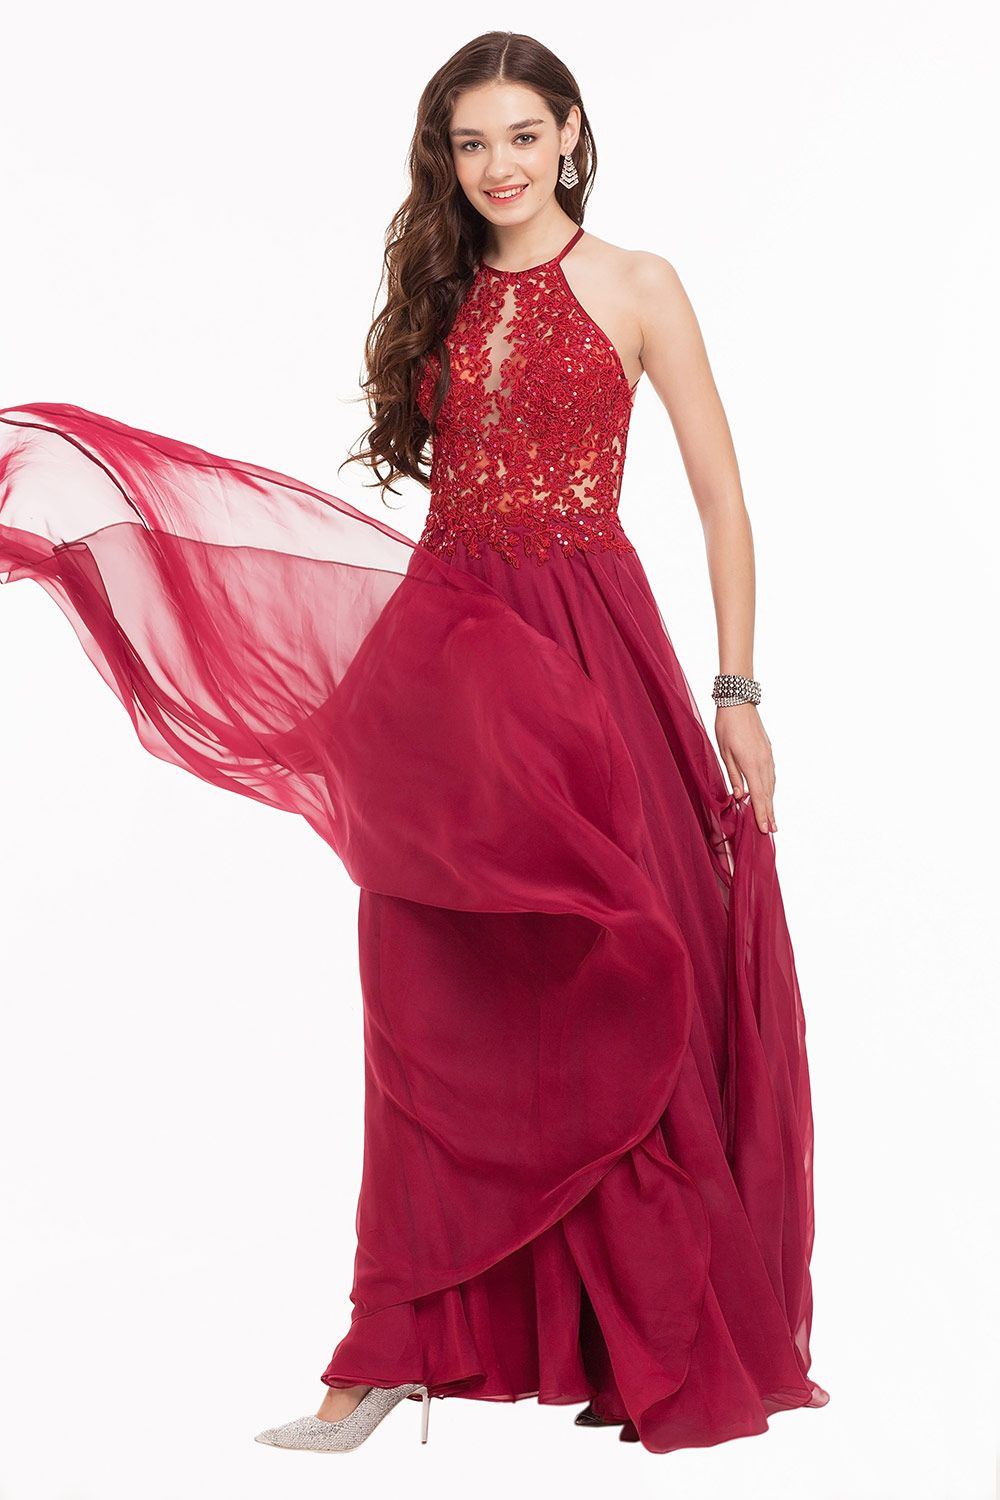 Fiona Dress Halter Neck Wine Fit Flare Long Prom Dress Glam